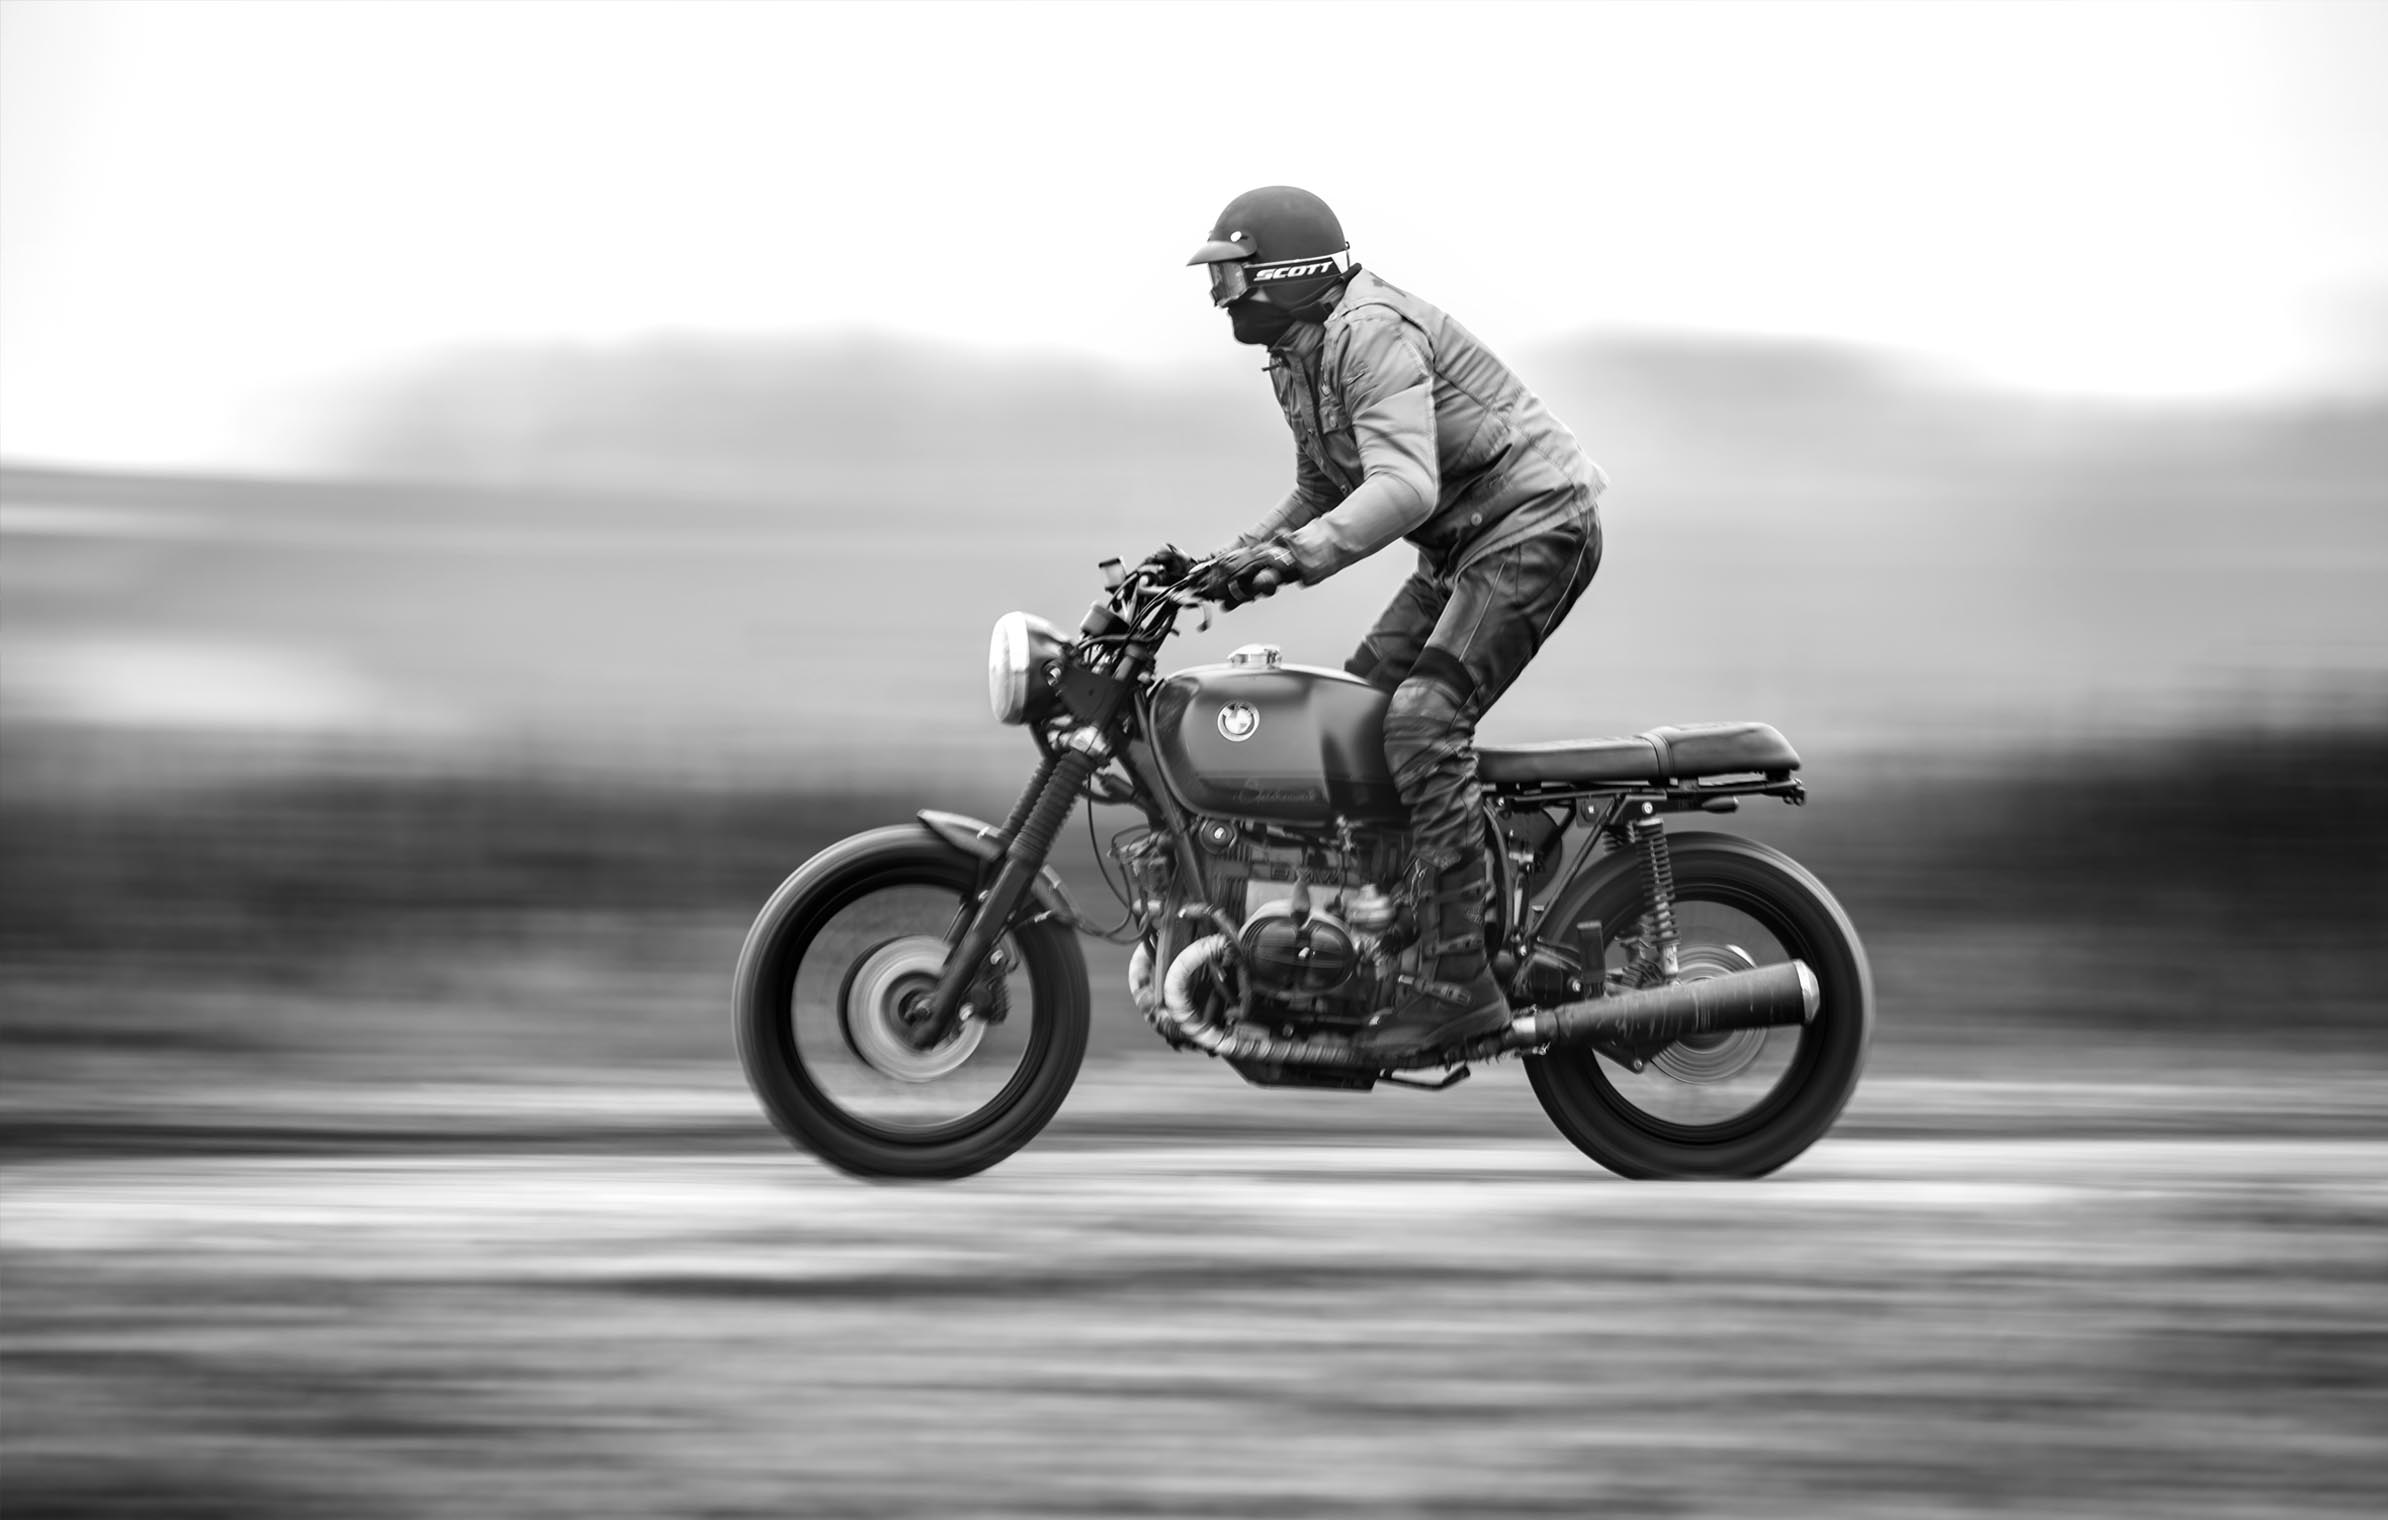 titan_roadtrip_motorcycles_riding_street_three_bmw_blackandwhite